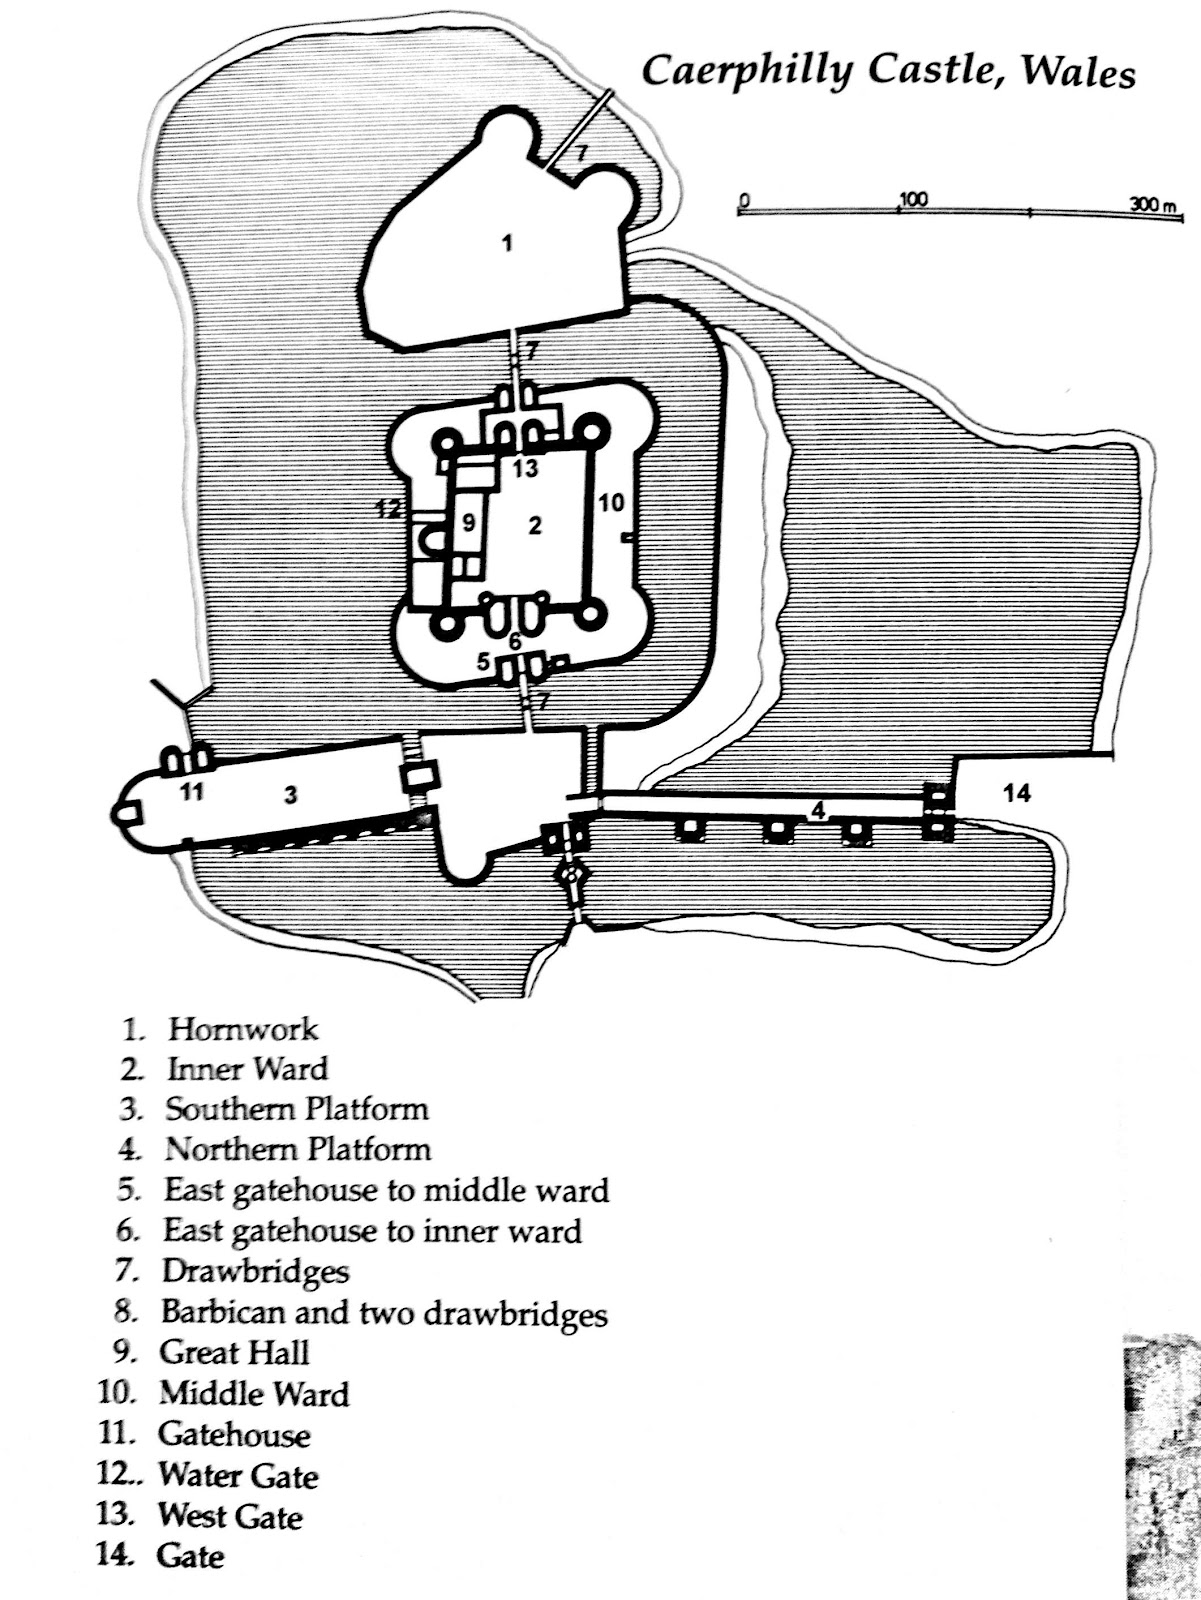 Castle Diagram Worksheet Orbital Filling For Bromine The Helpful Art Teacher Medieval Castles